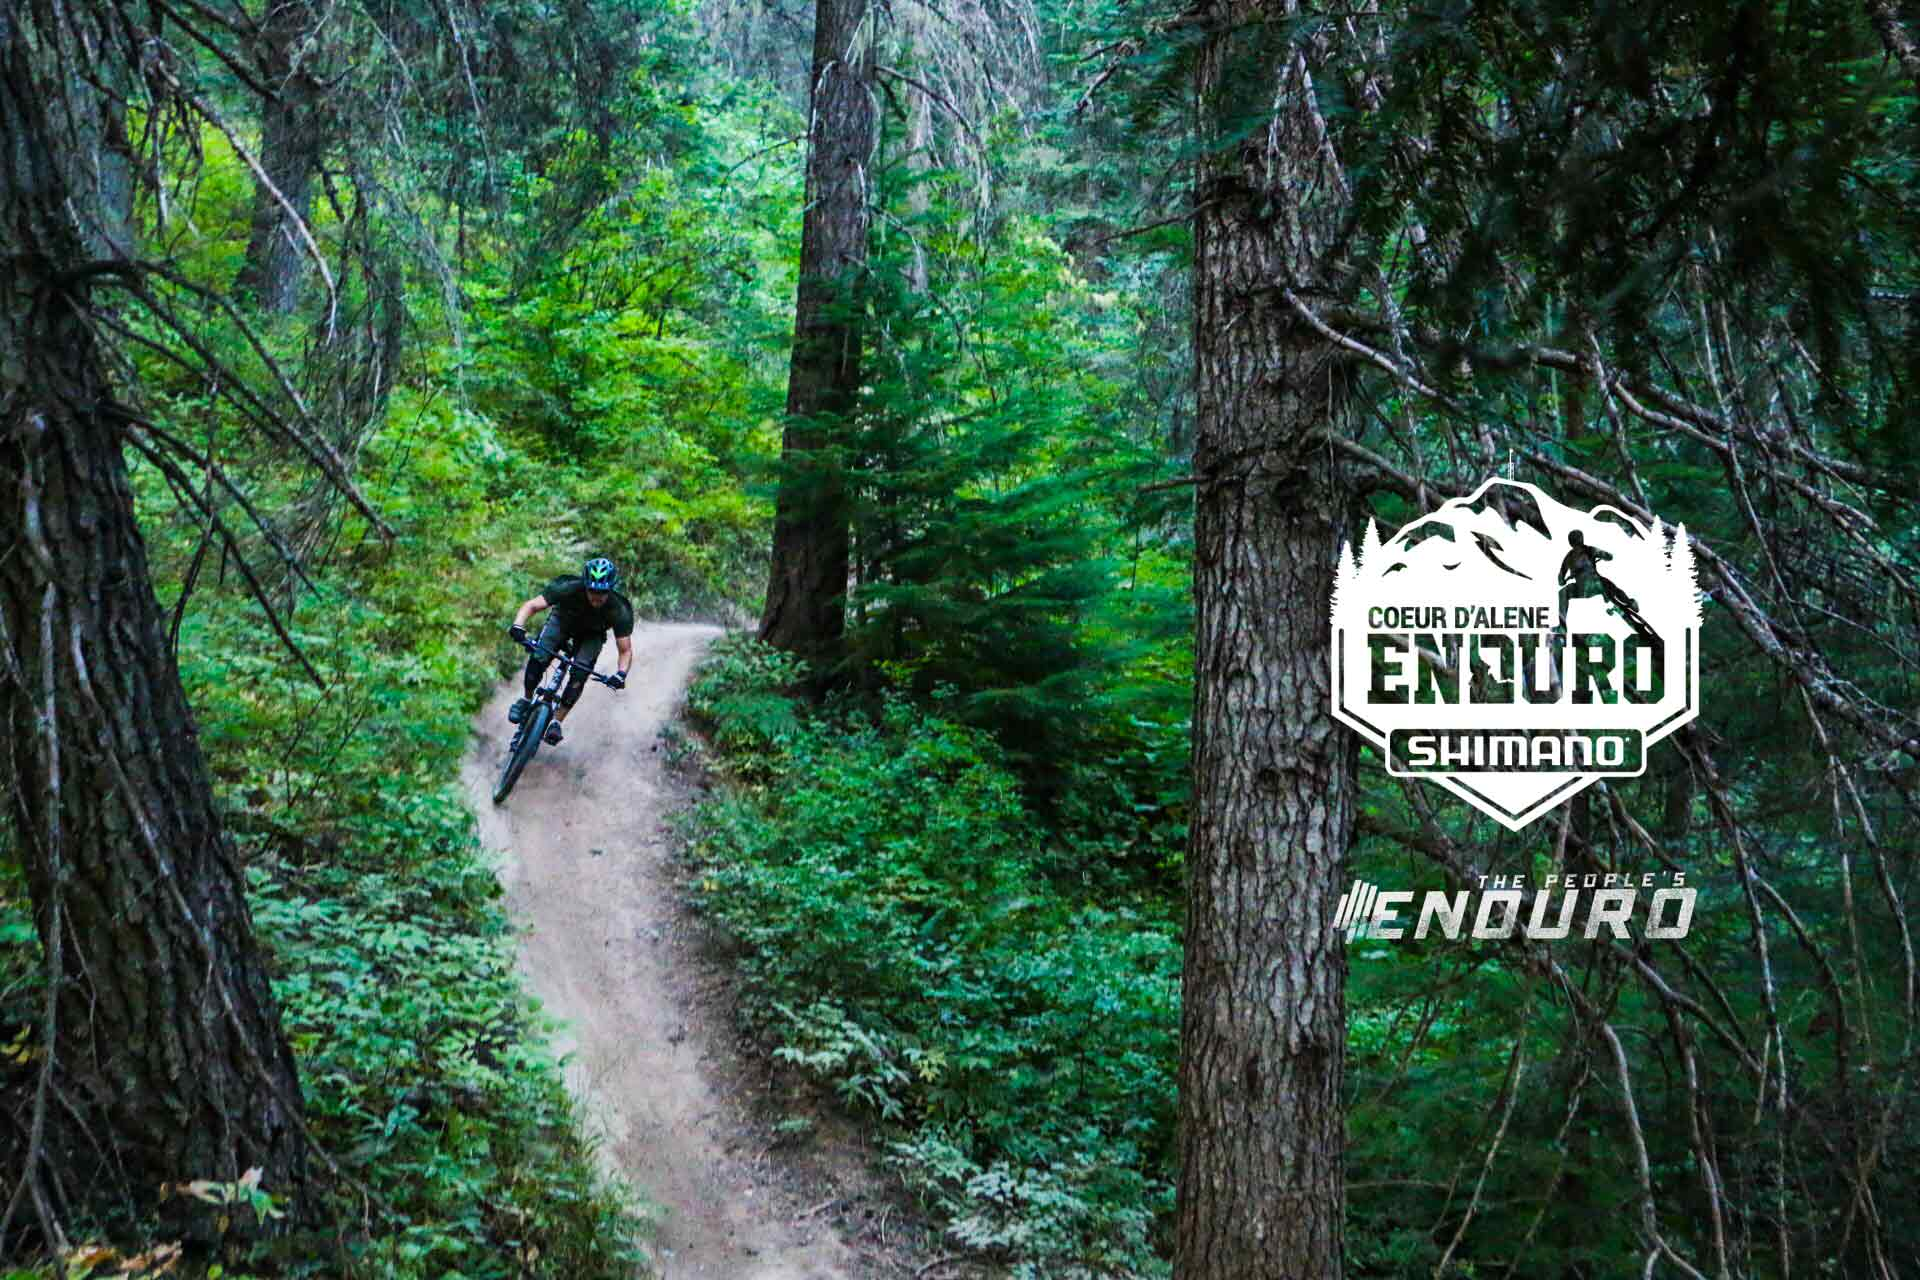 CDA Enduro is now part of The People's Enduro Series!